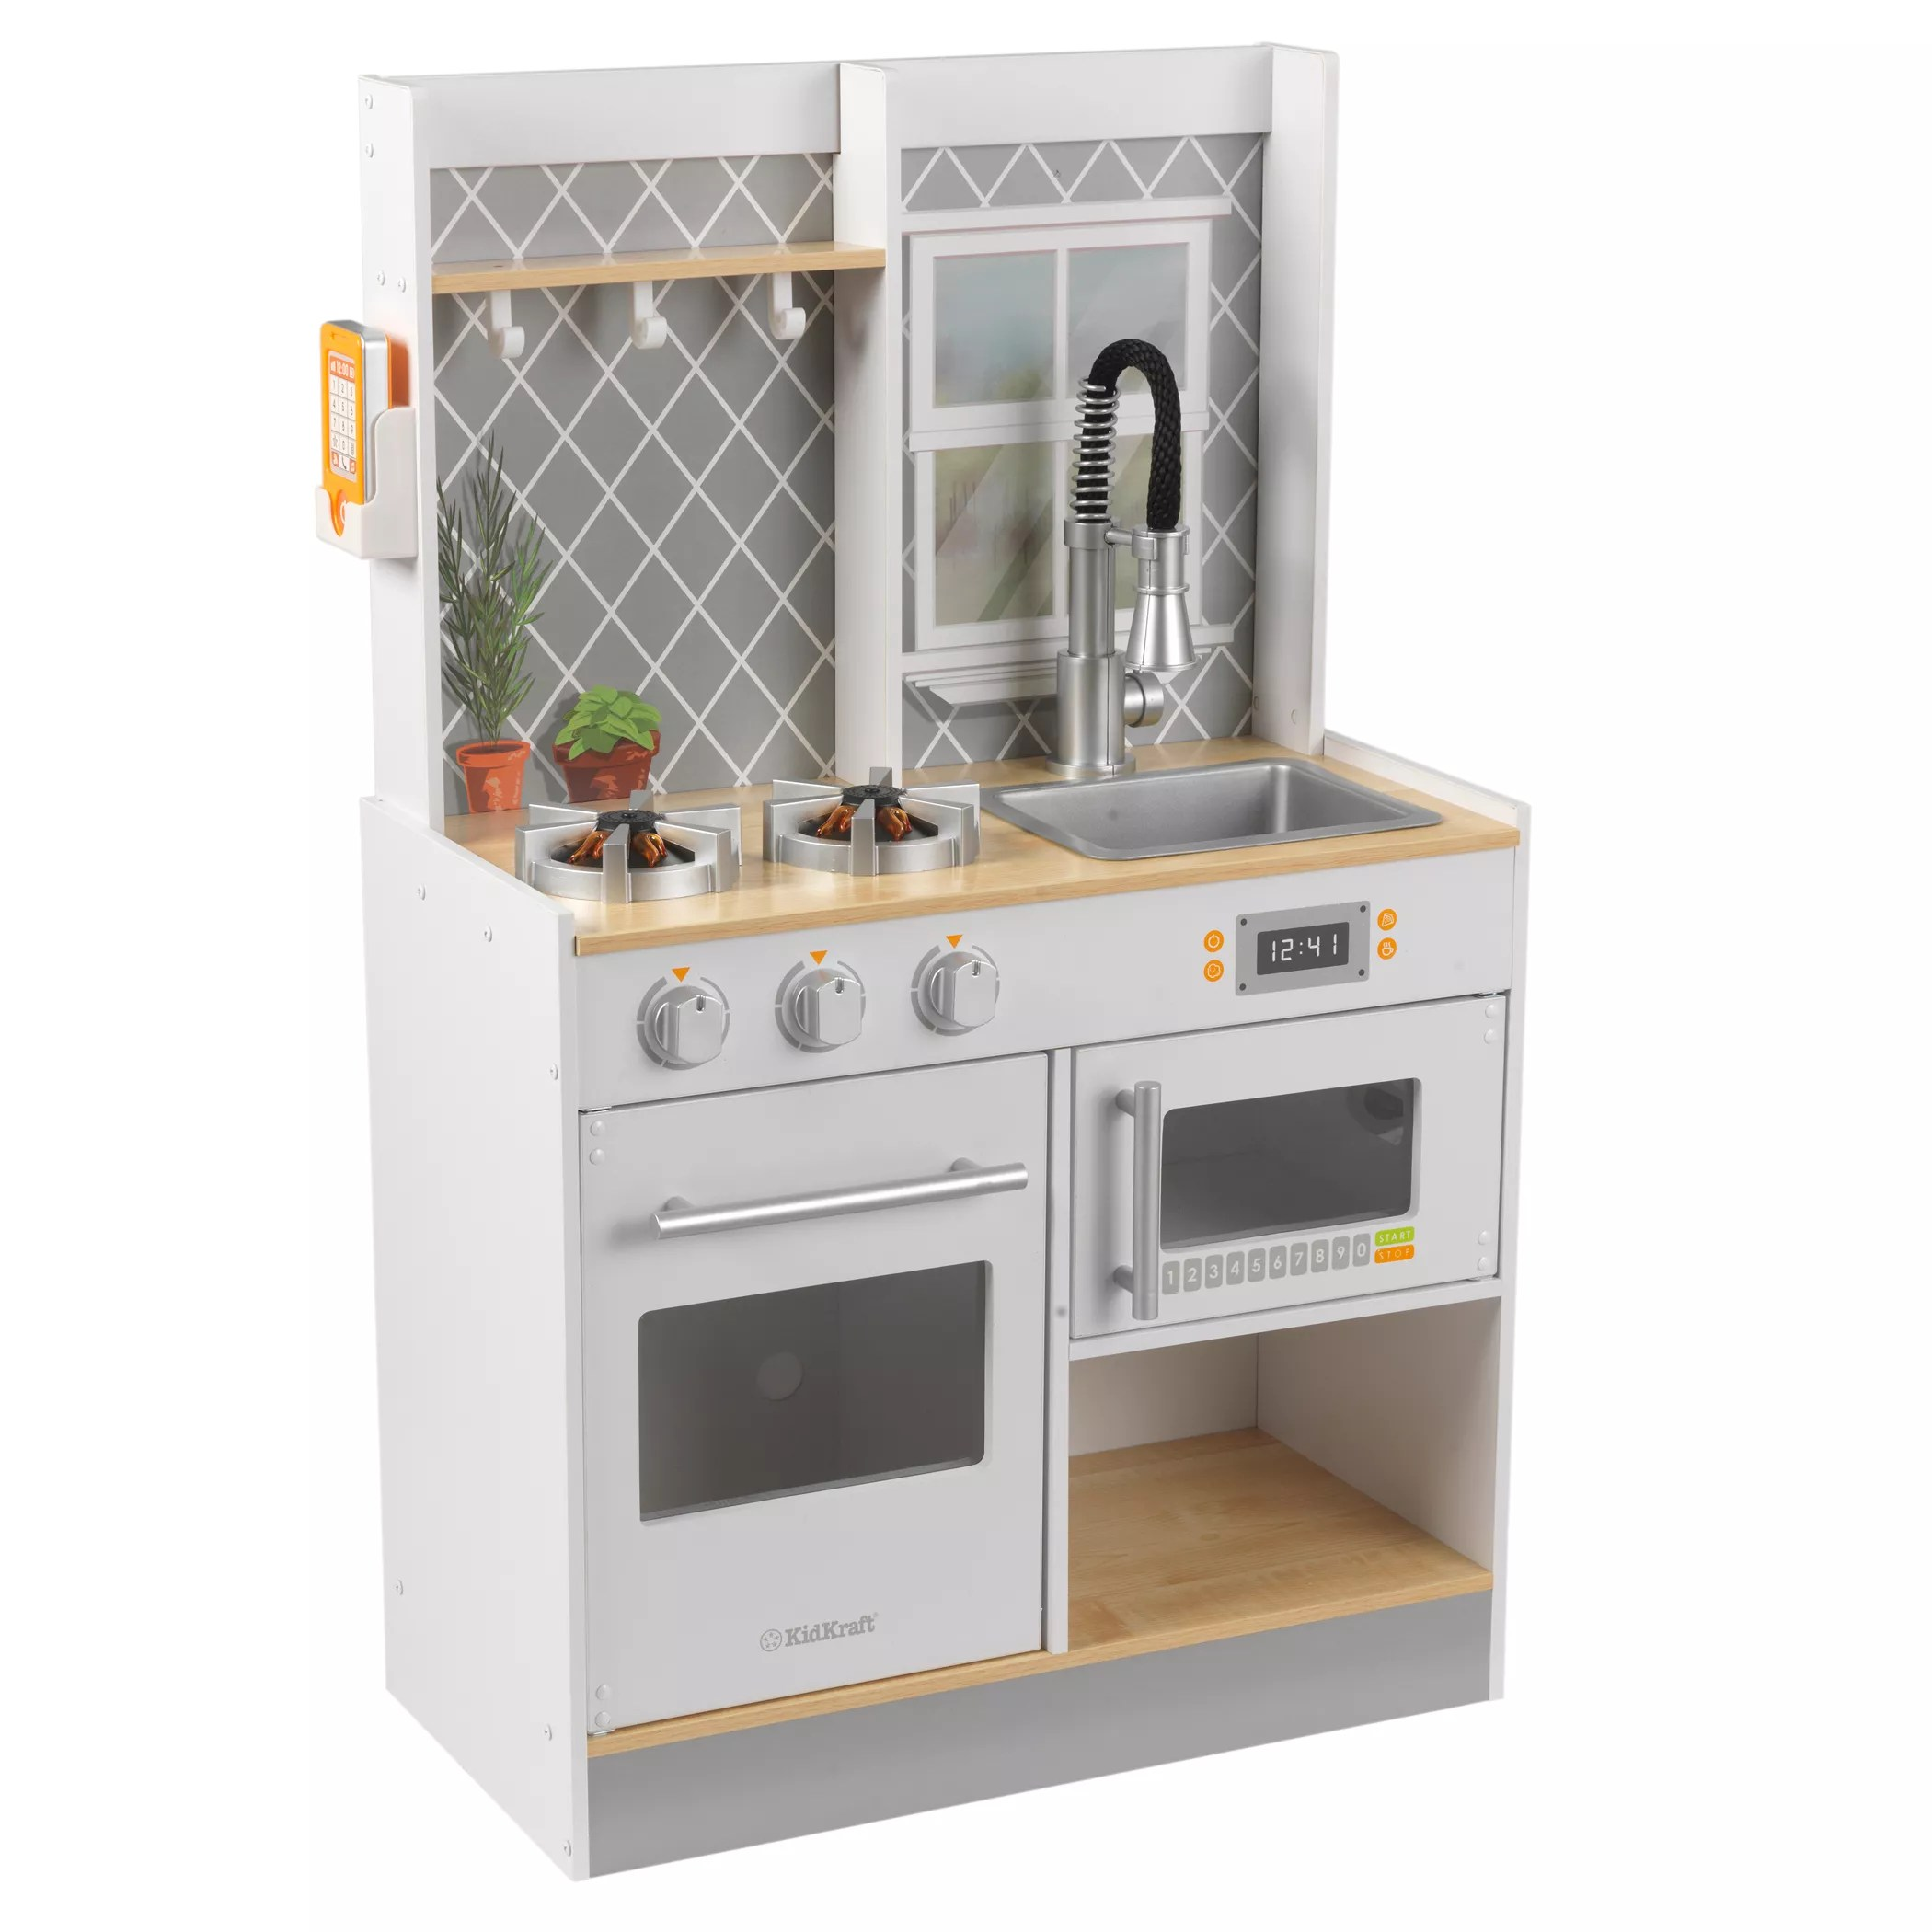 KidKraft Lets Cook Wooden Play Kitchen